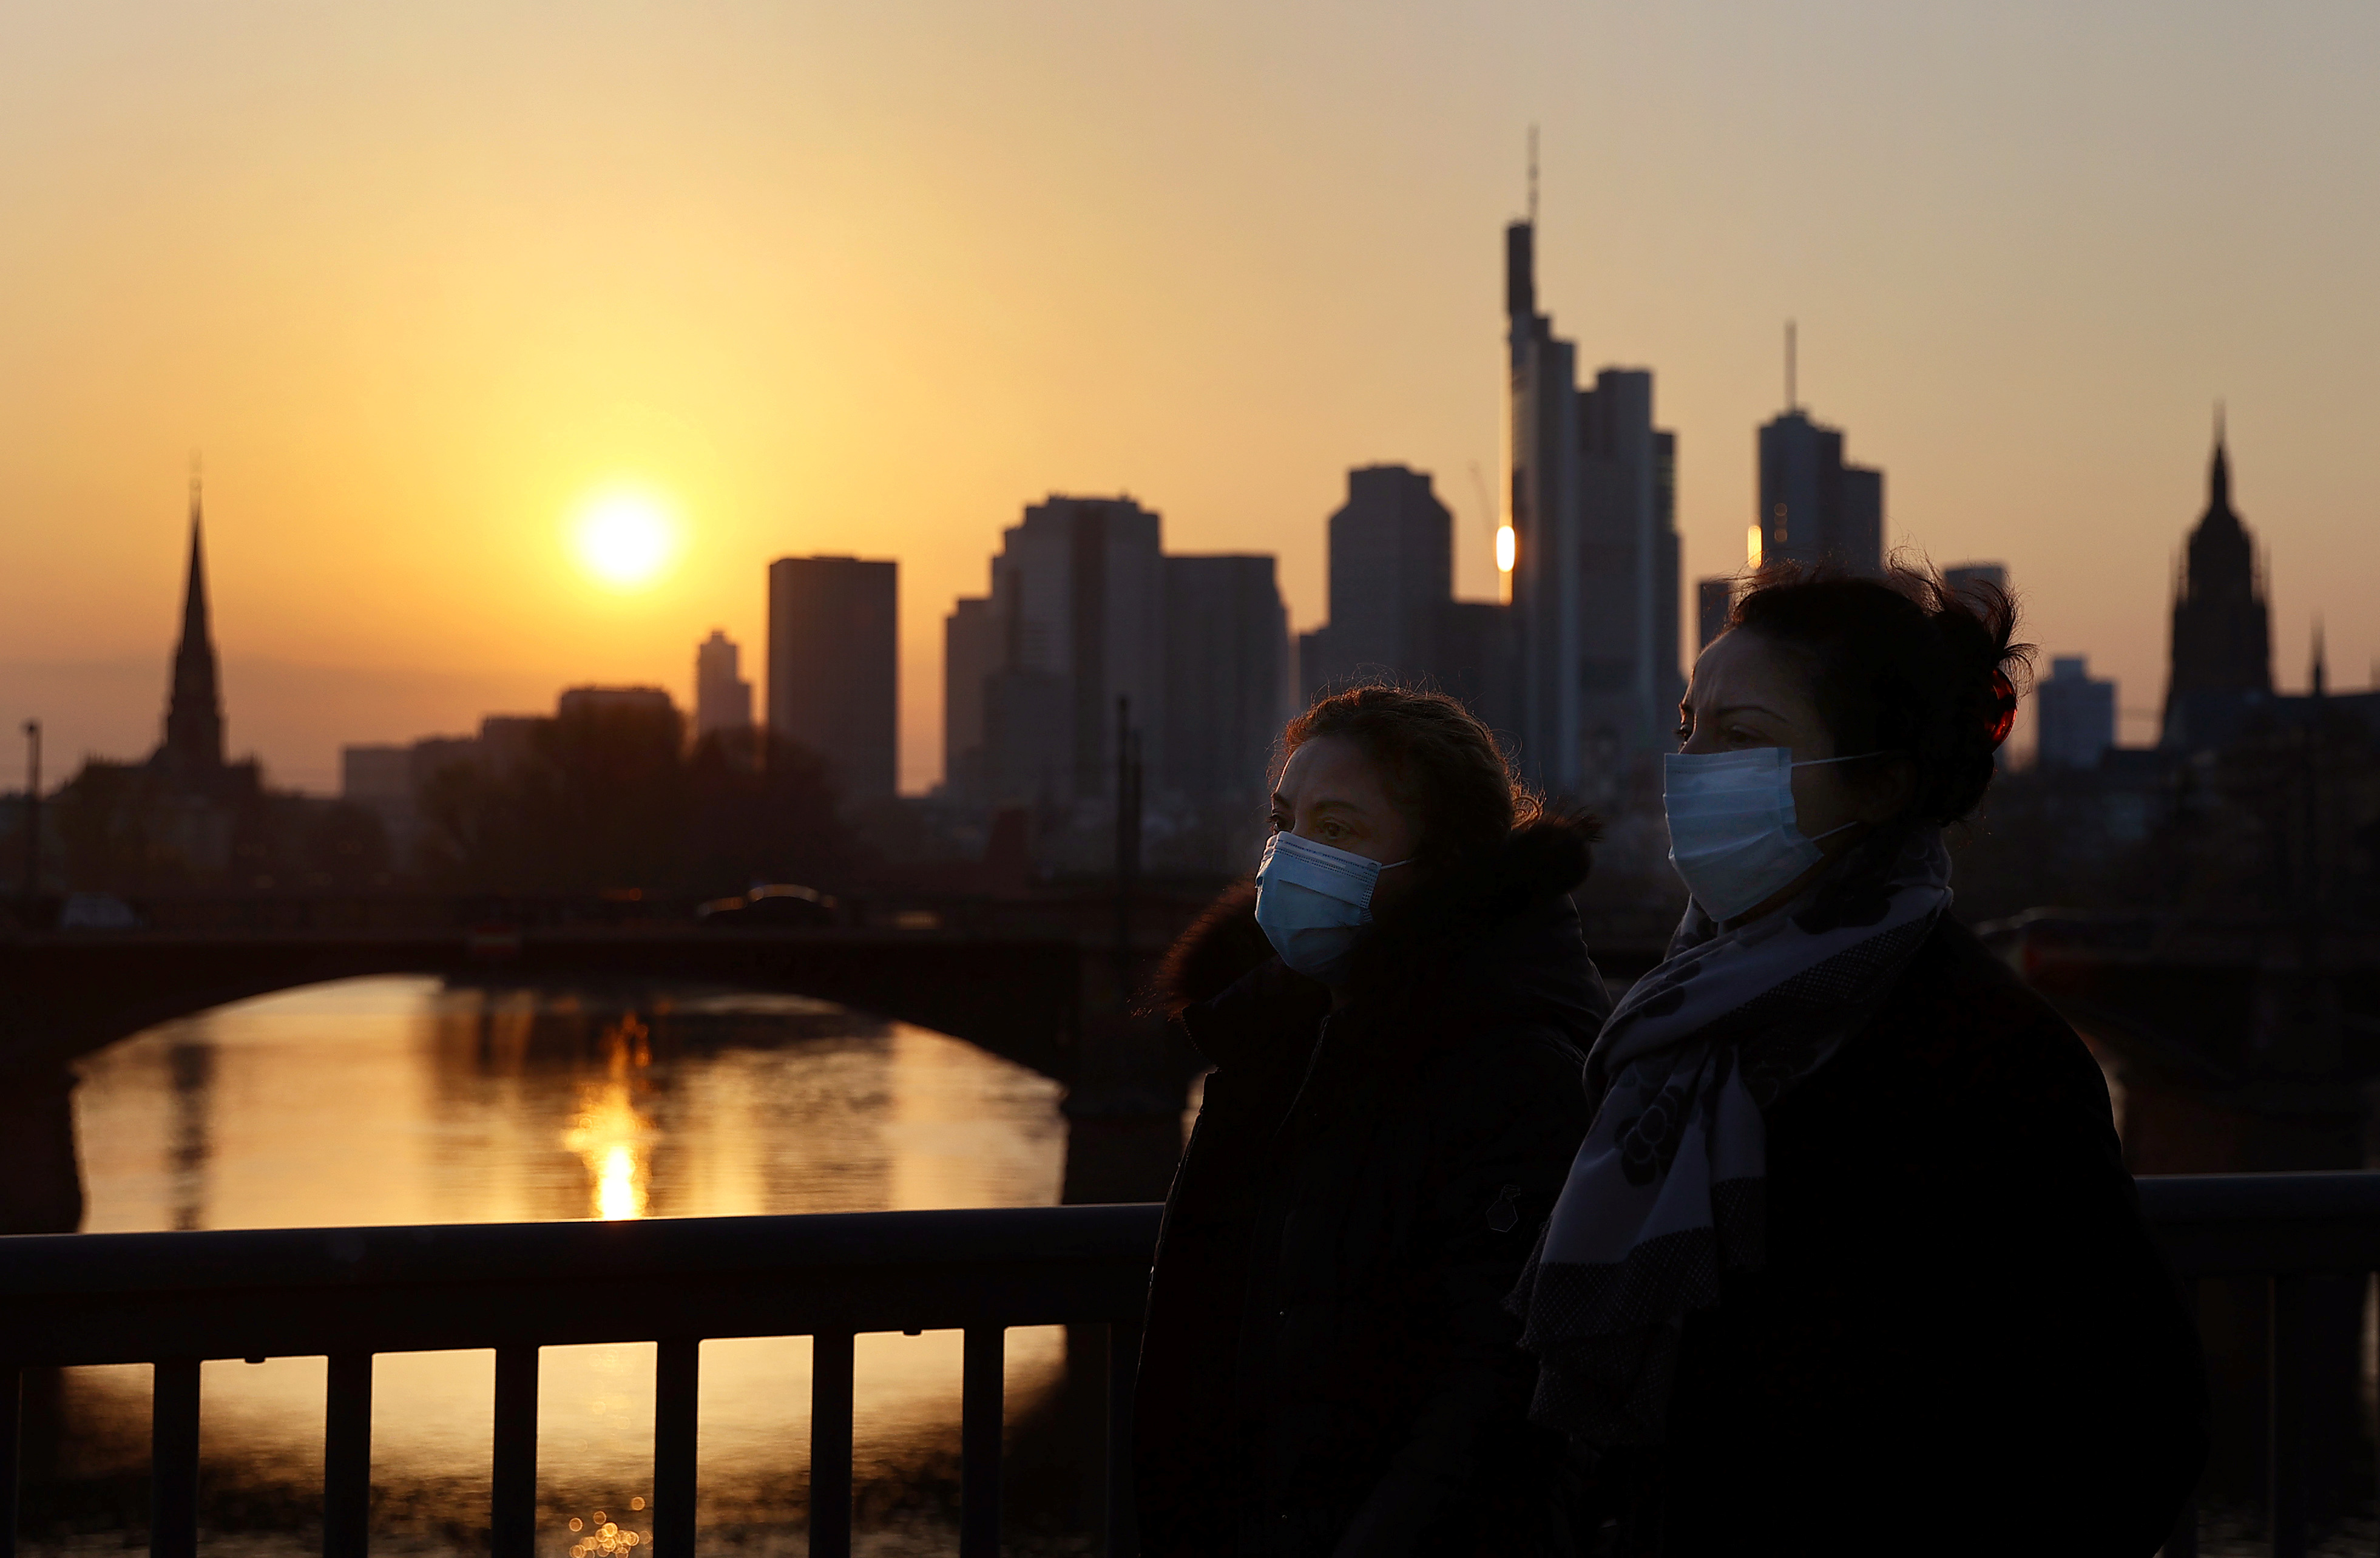 Two women wearing protective masks cross a bridge in front of the skyline in Frankfurt, Germany, March 28, 2020, as the spread of the coronavirus disease (COVID-19) continues. Photo: Reuters